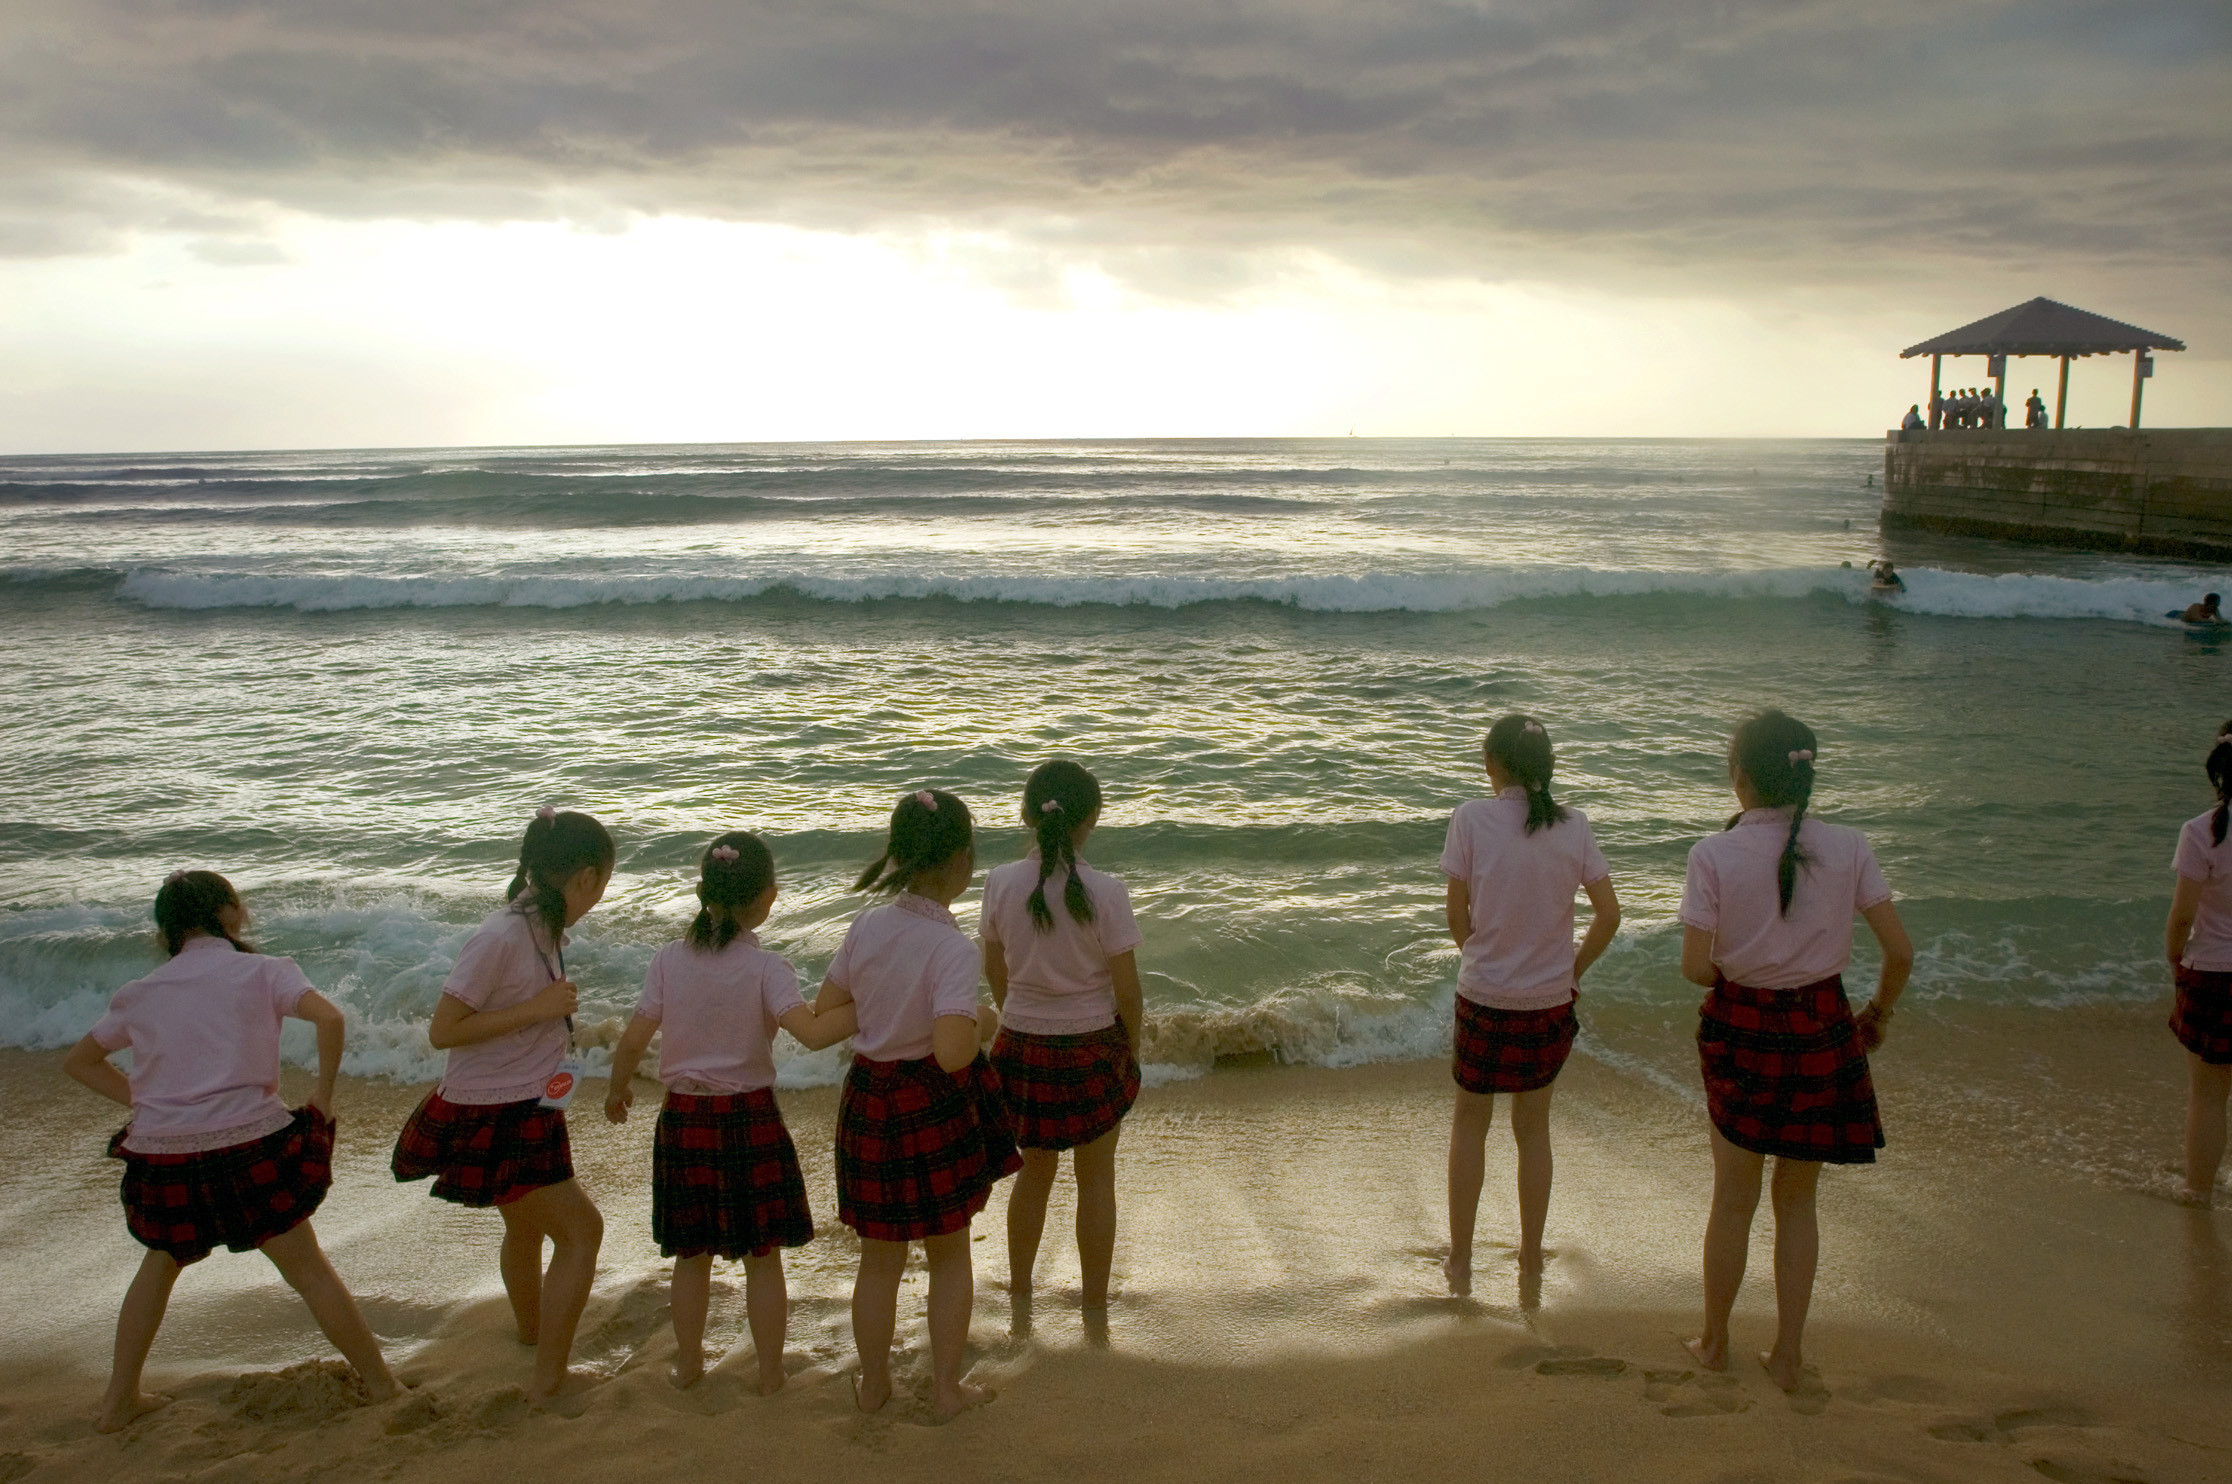 children play on a beach and look out to sea